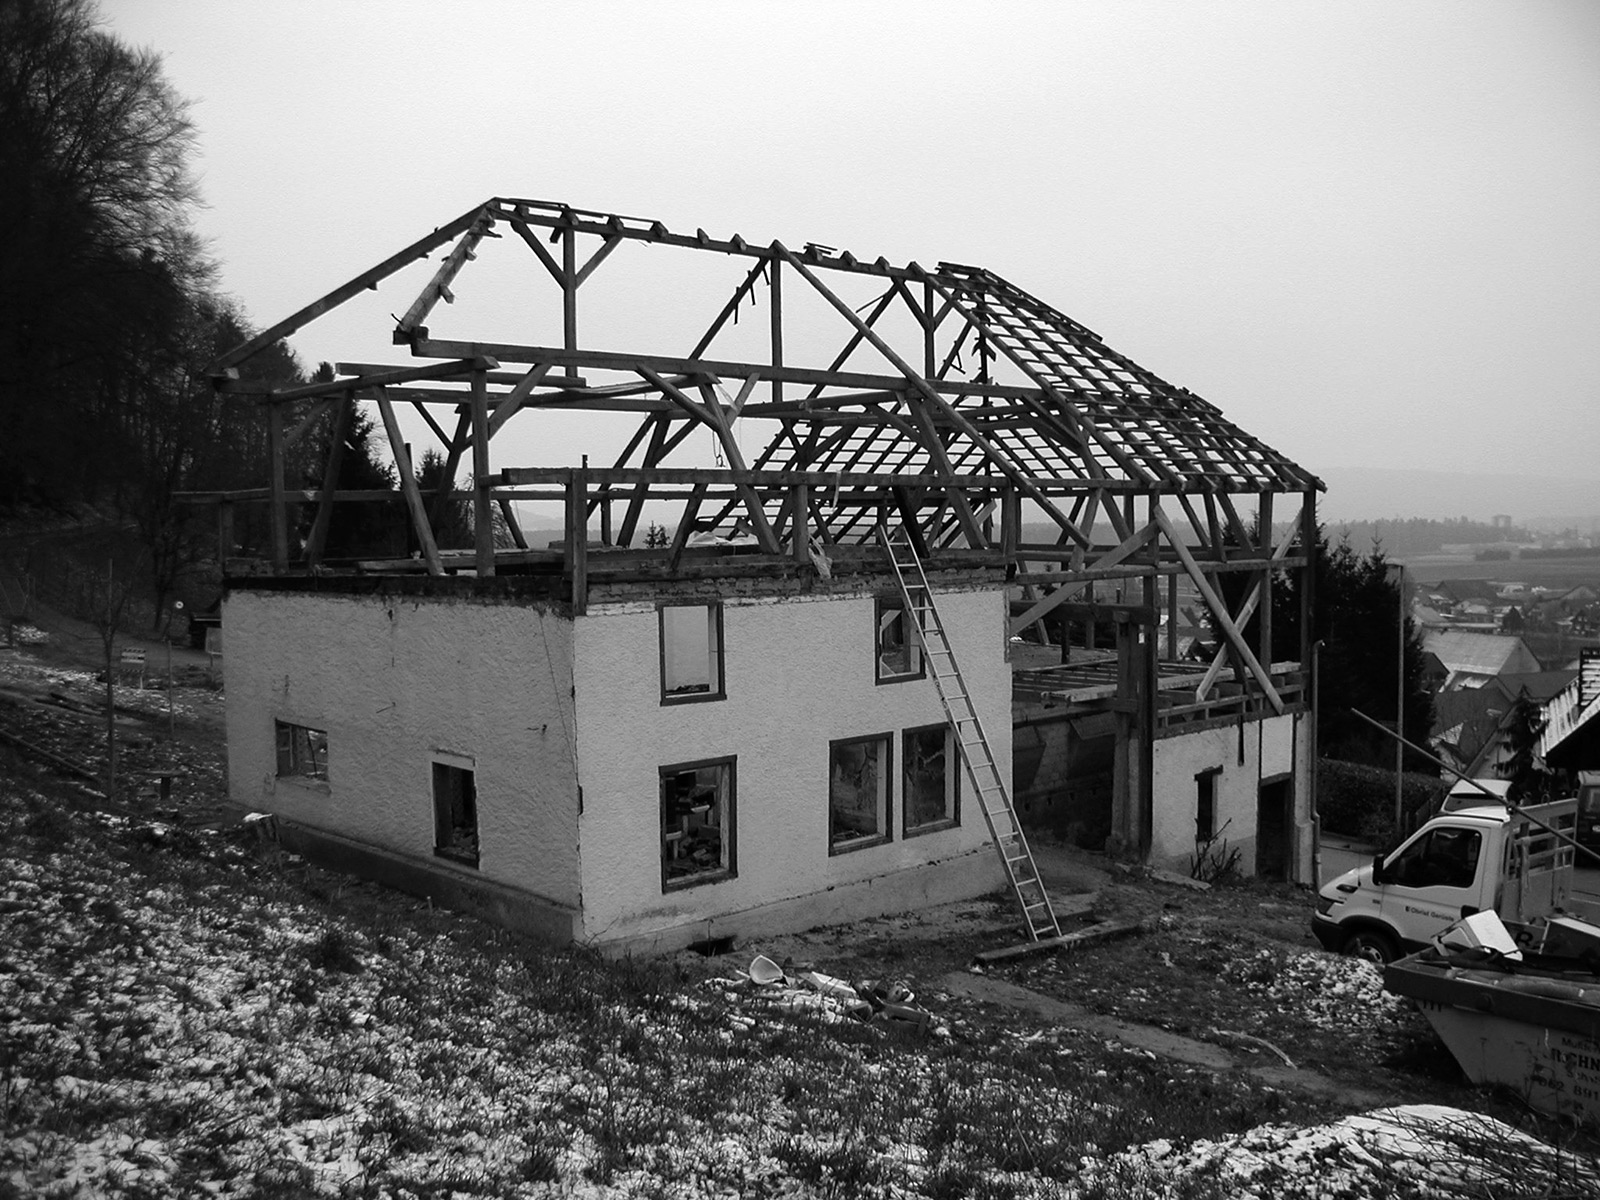 The grown house, demolition